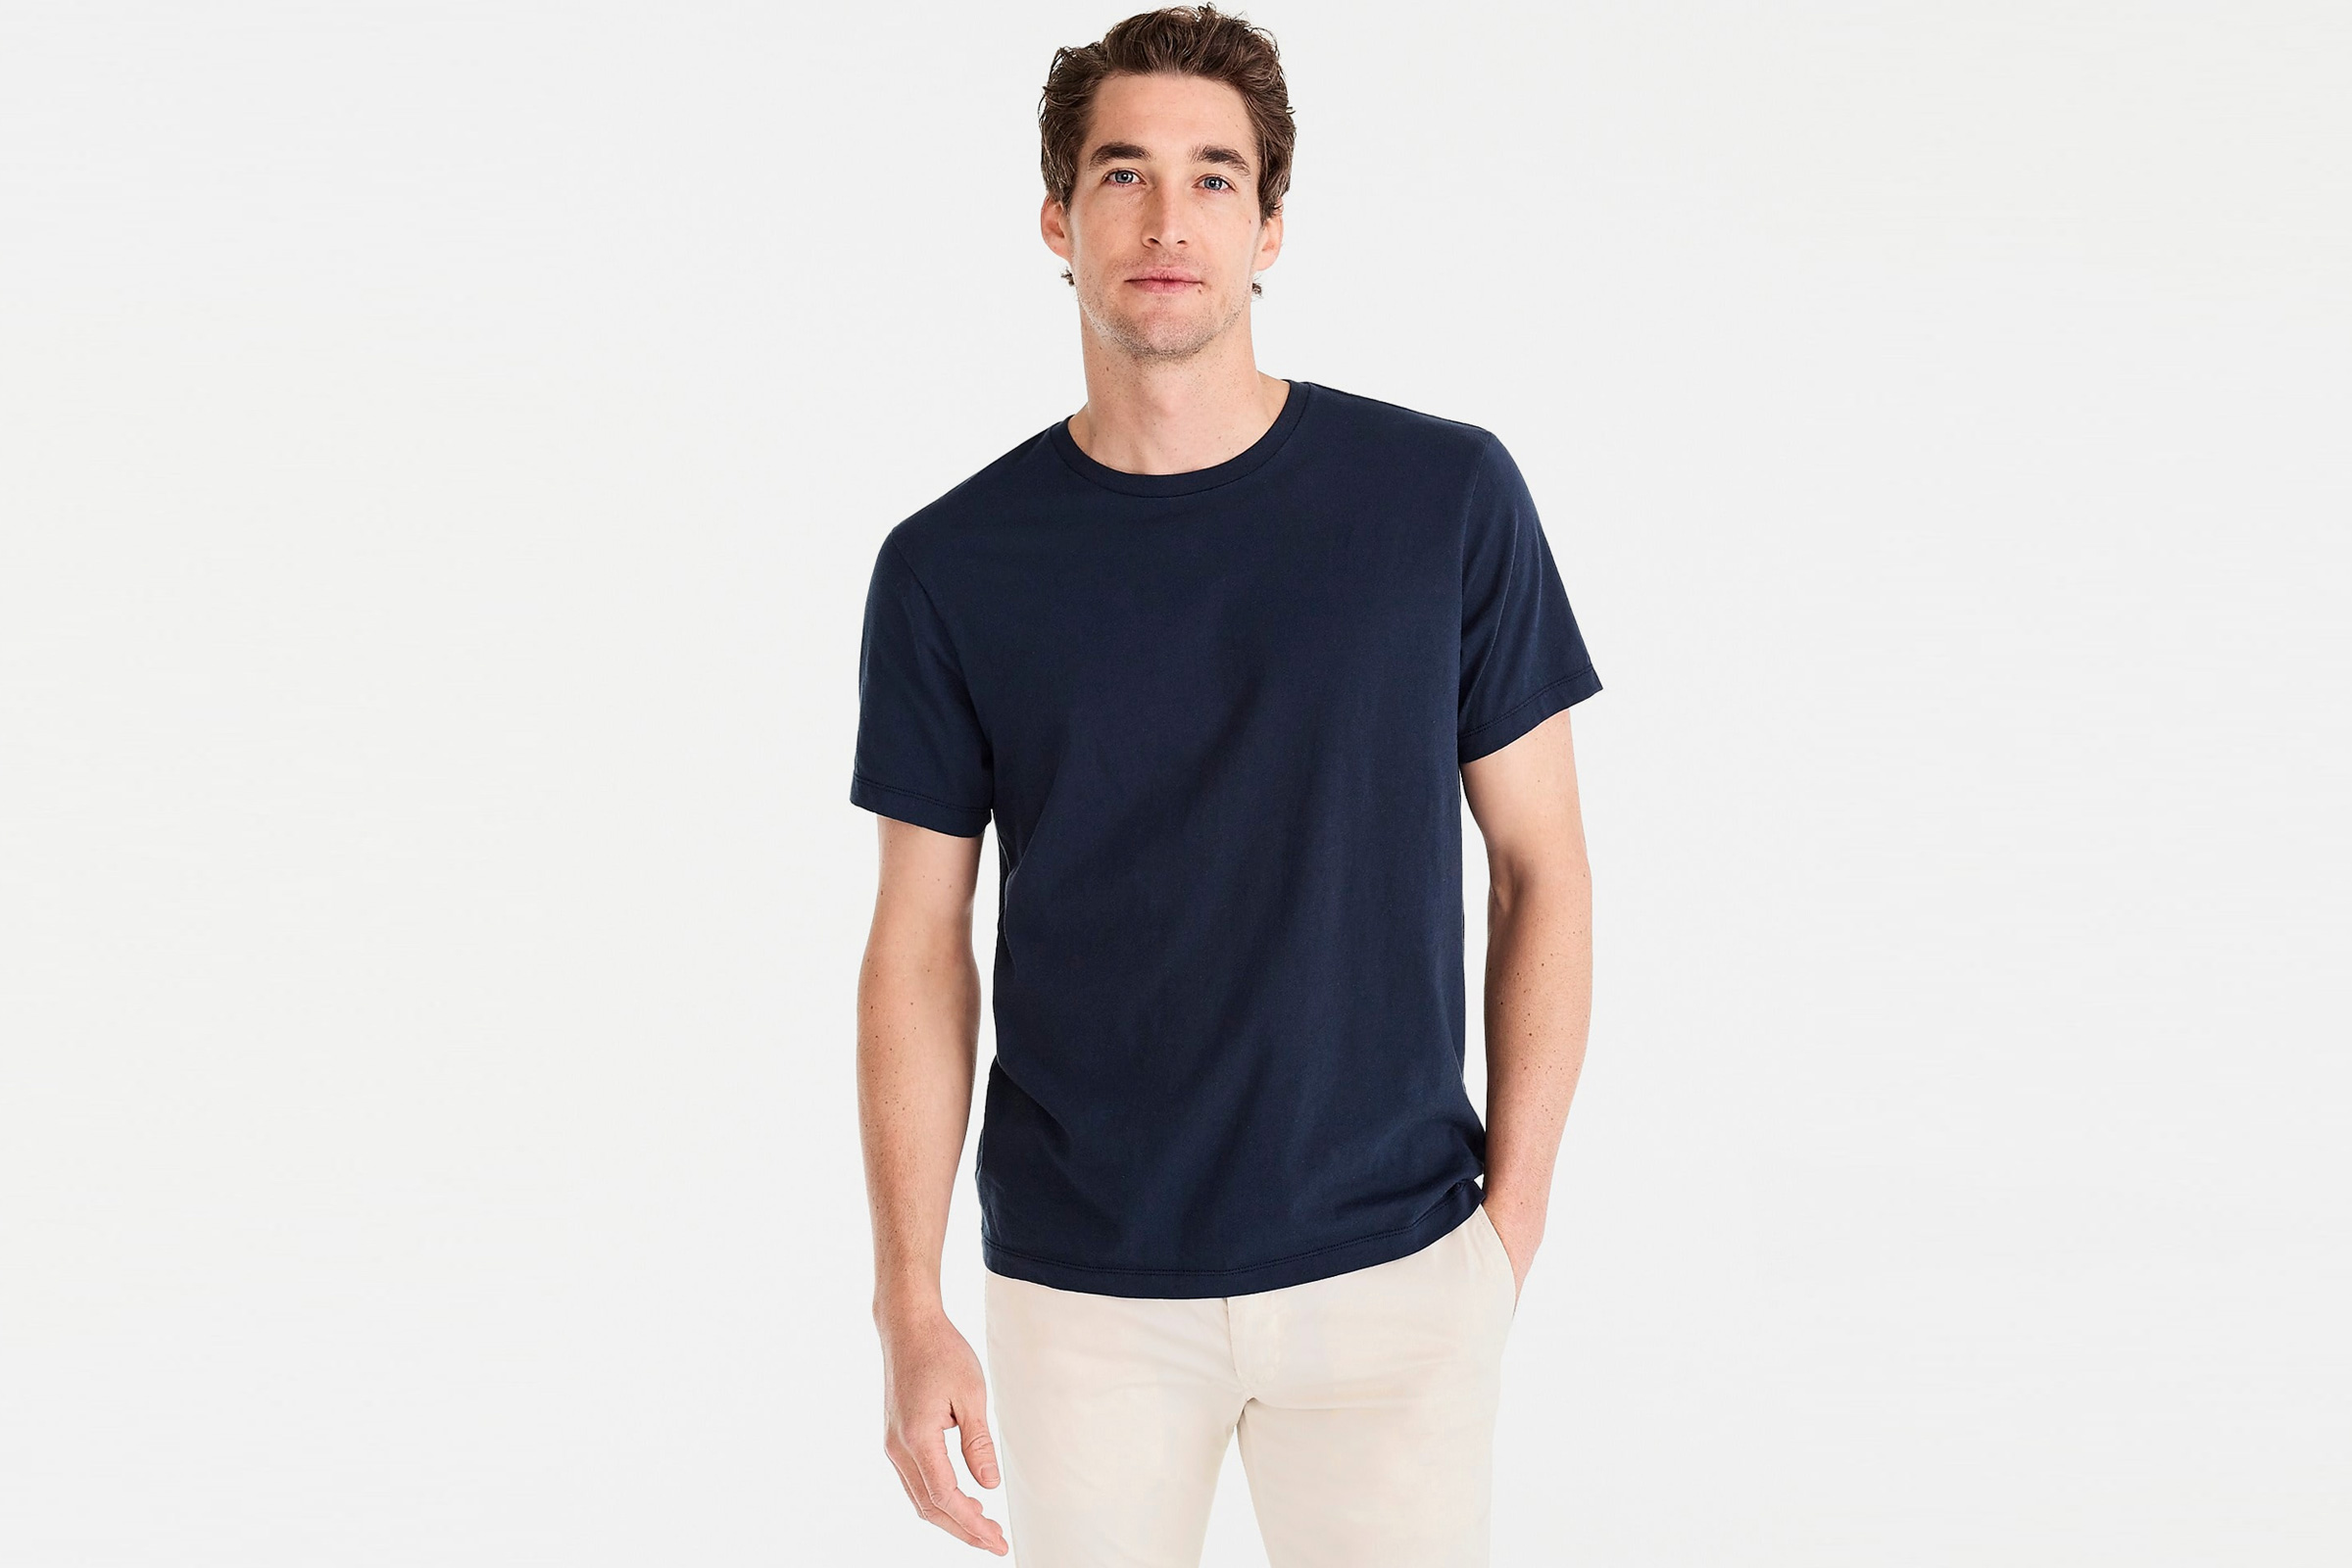 Men's Basic Tees J CREW